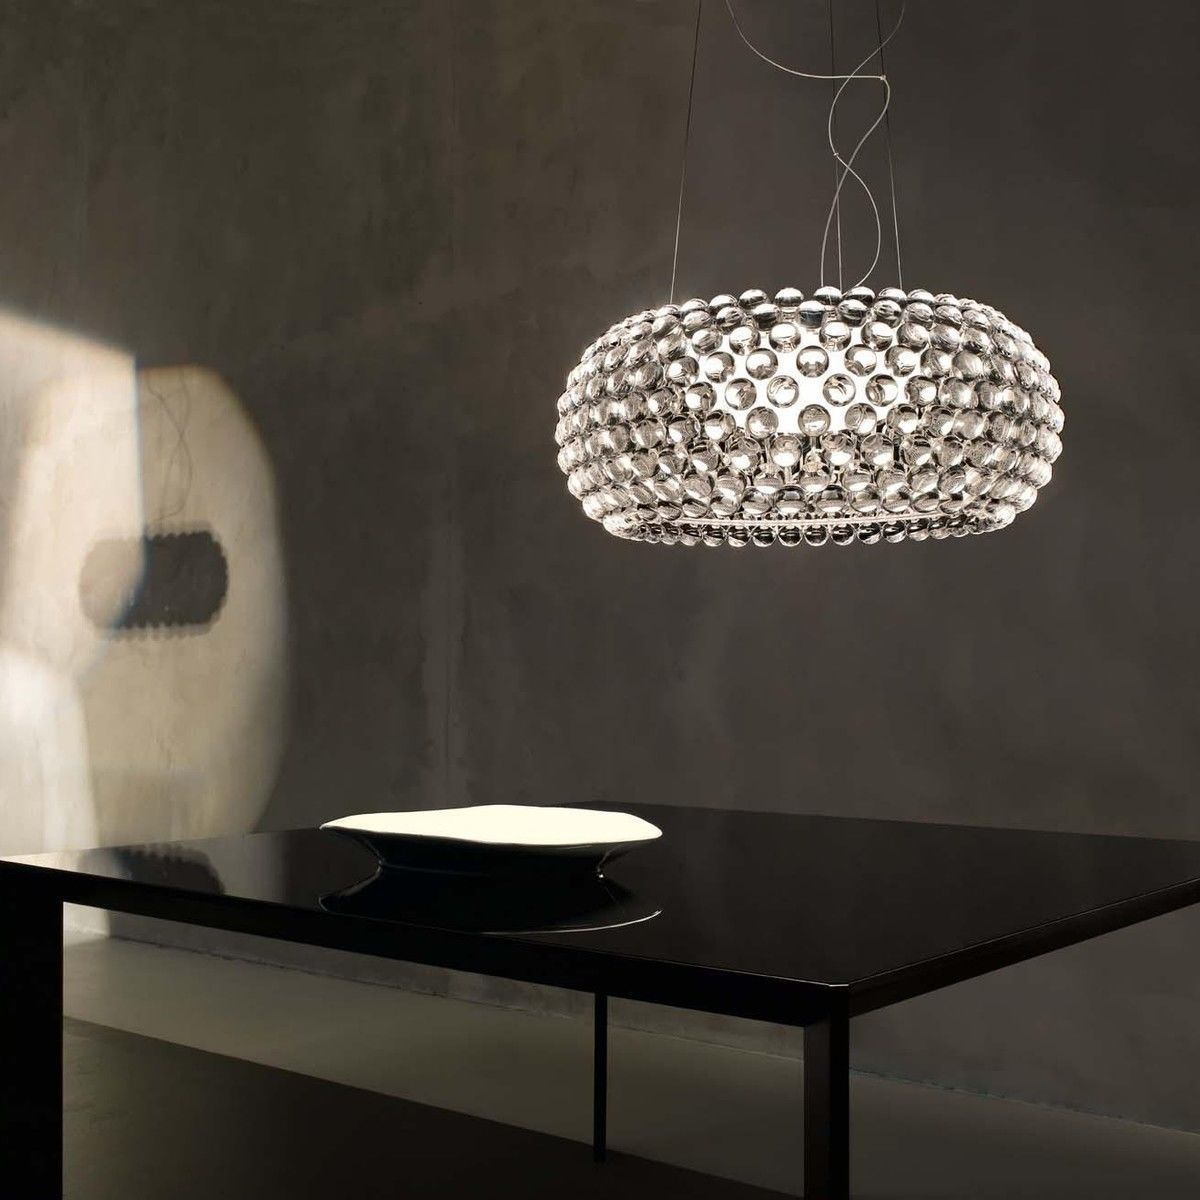 caboche grande sospensione suspension lamp foscarini. Black Bedroom Furniture Sets. Home Design Ideas